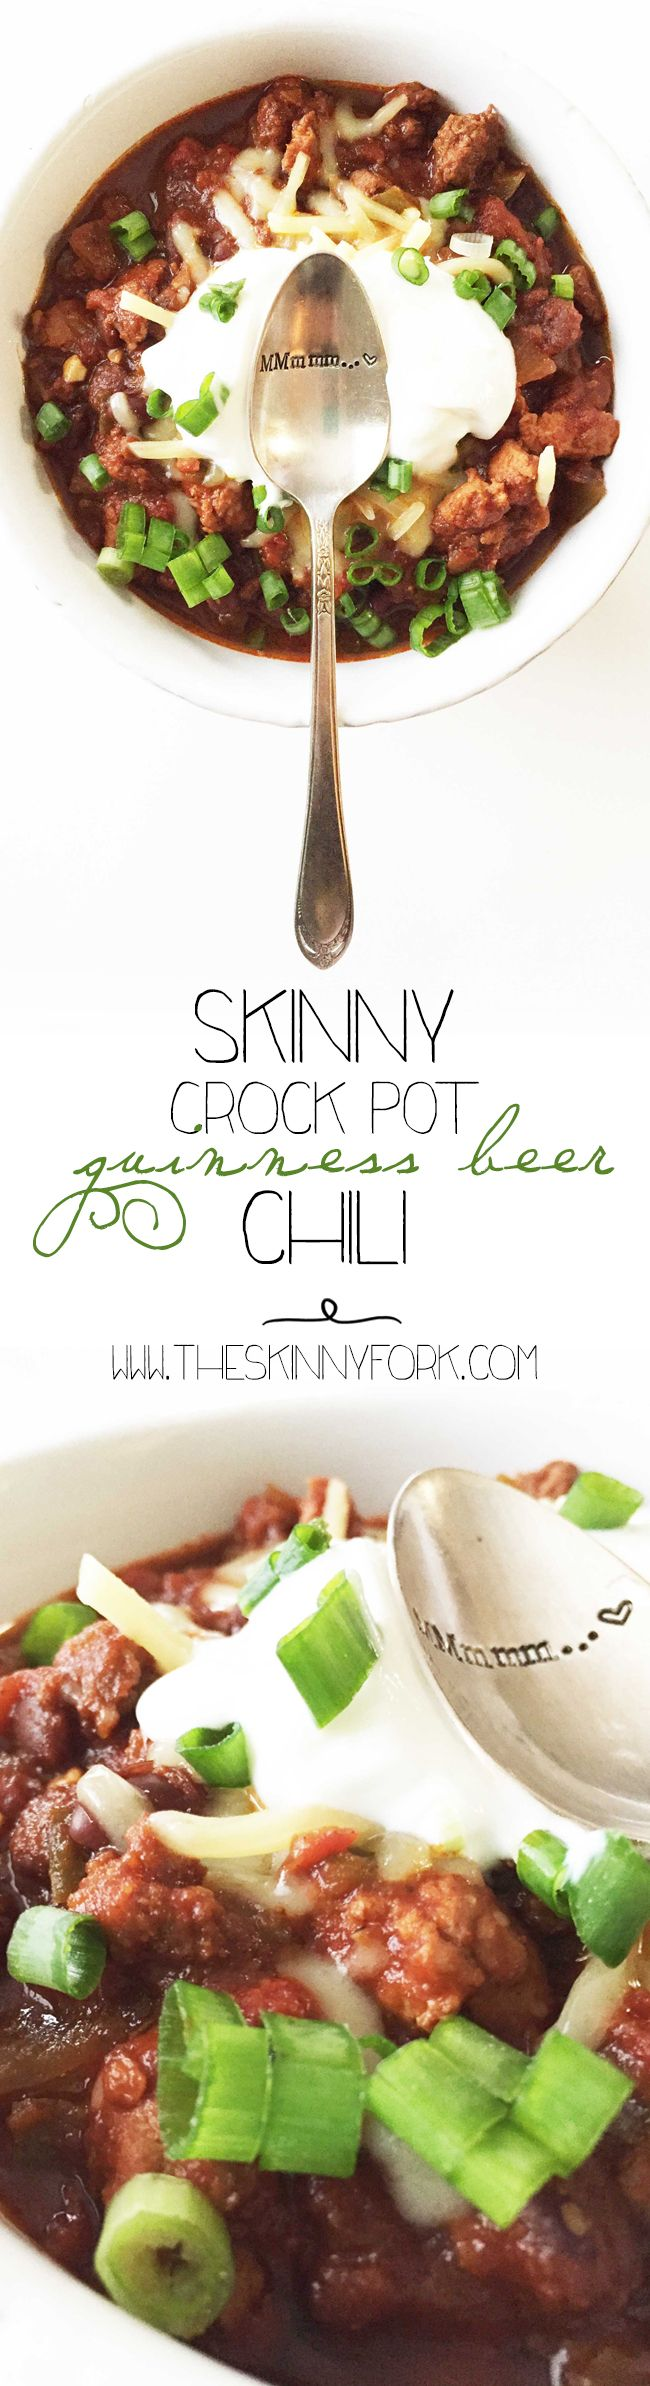 Skinny Crock Pot Guinness Beer Chili - Or as I like to call it... Irish chili! Low carb, beer friendly, and full of Bar-B-Q love! TheSkinnyFork.com